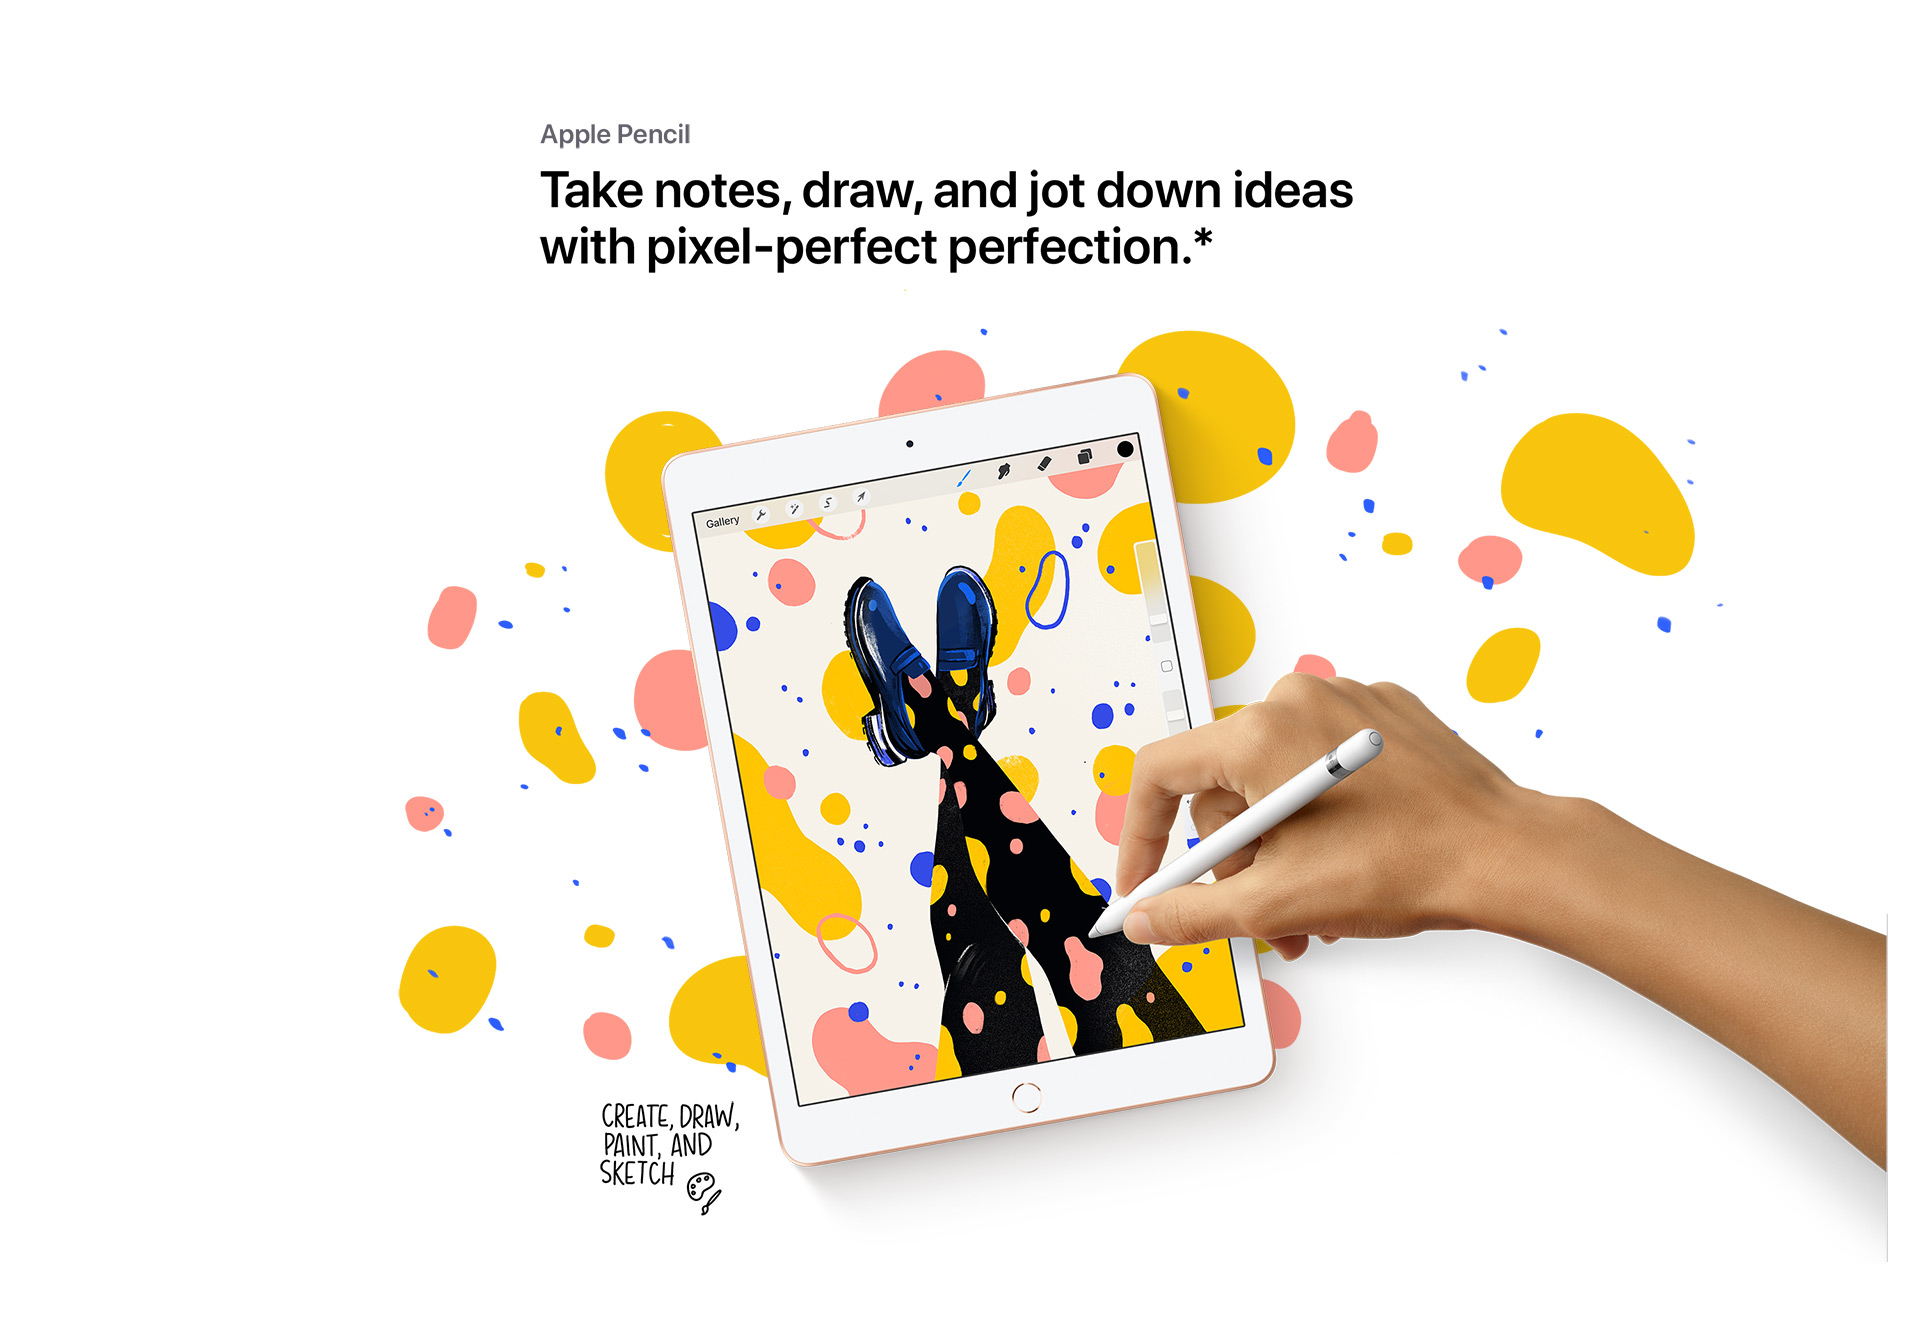 Take notes, draw, and jot down ideas with pixel-perfect perfection.*